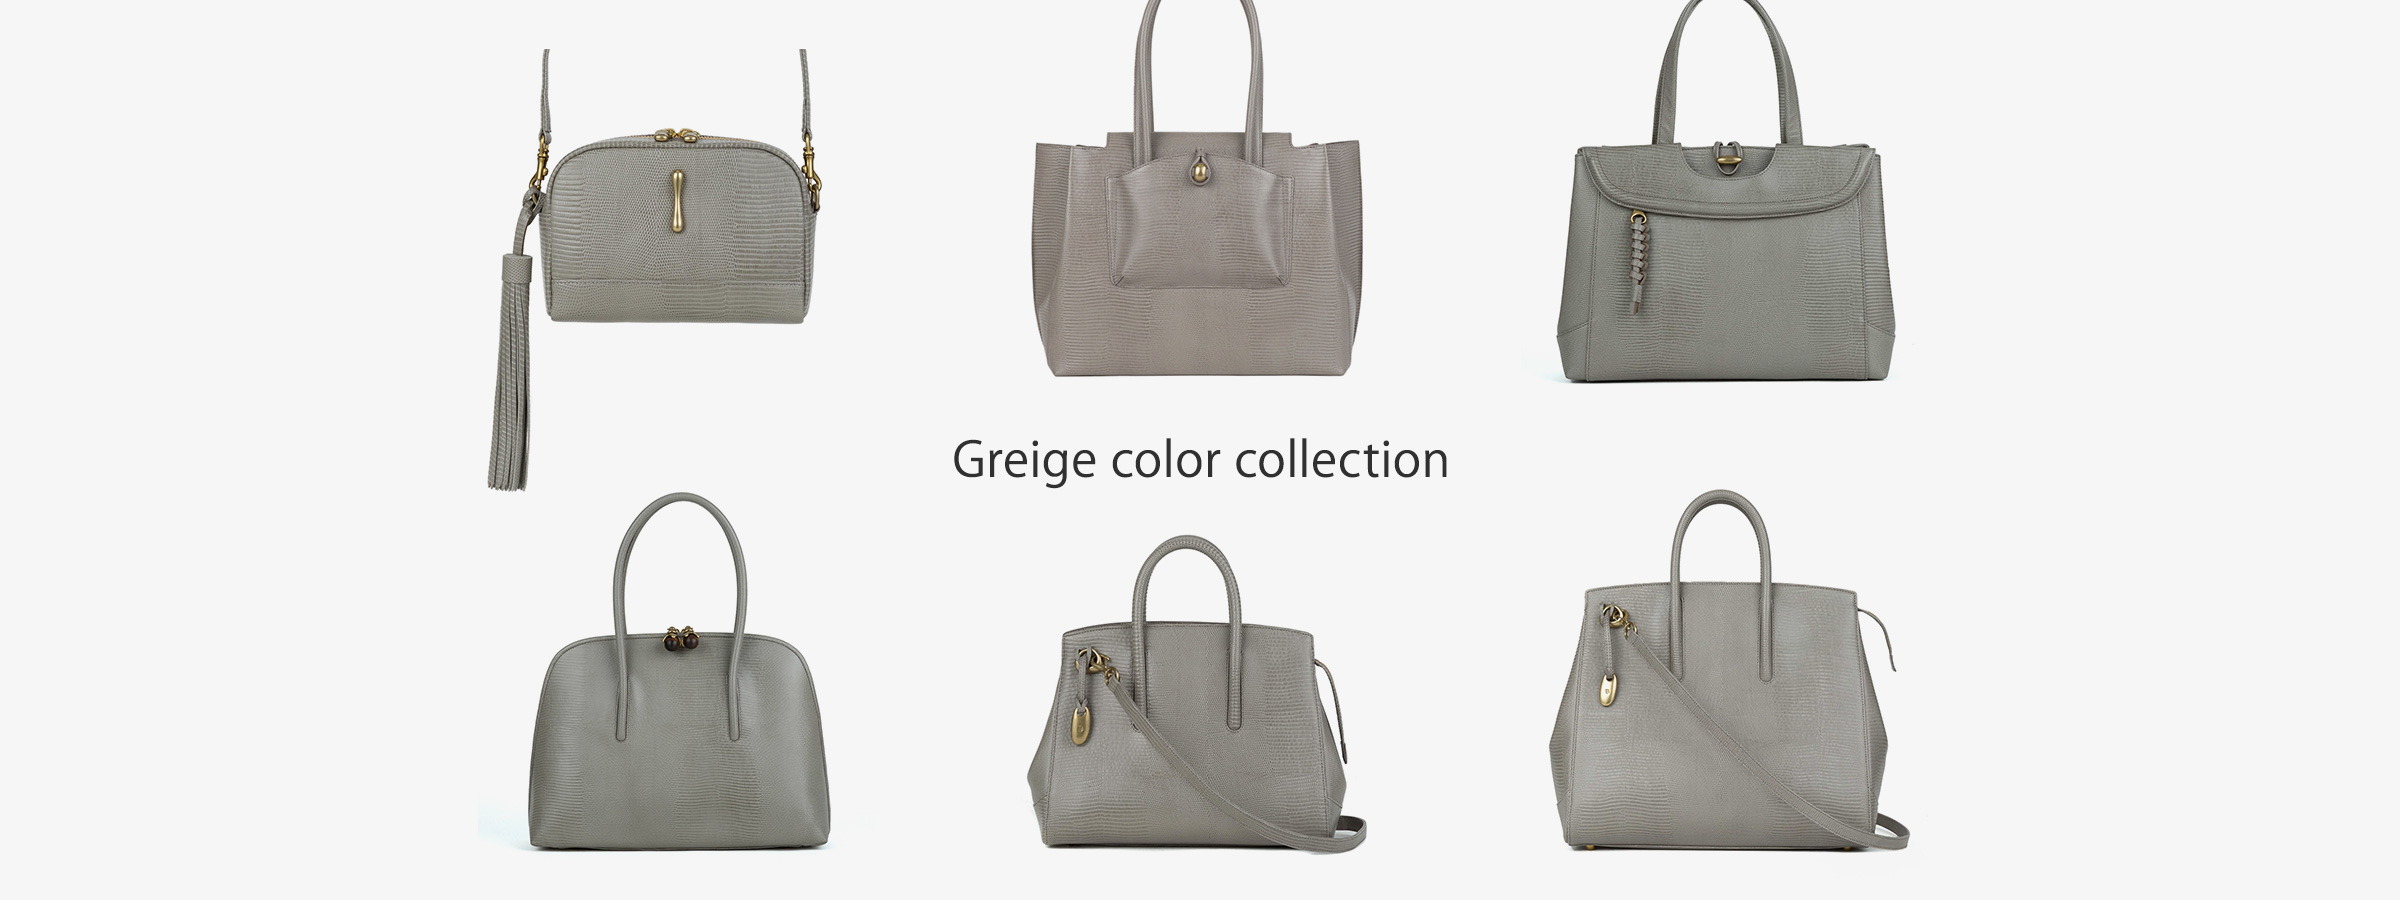 Greige color collection